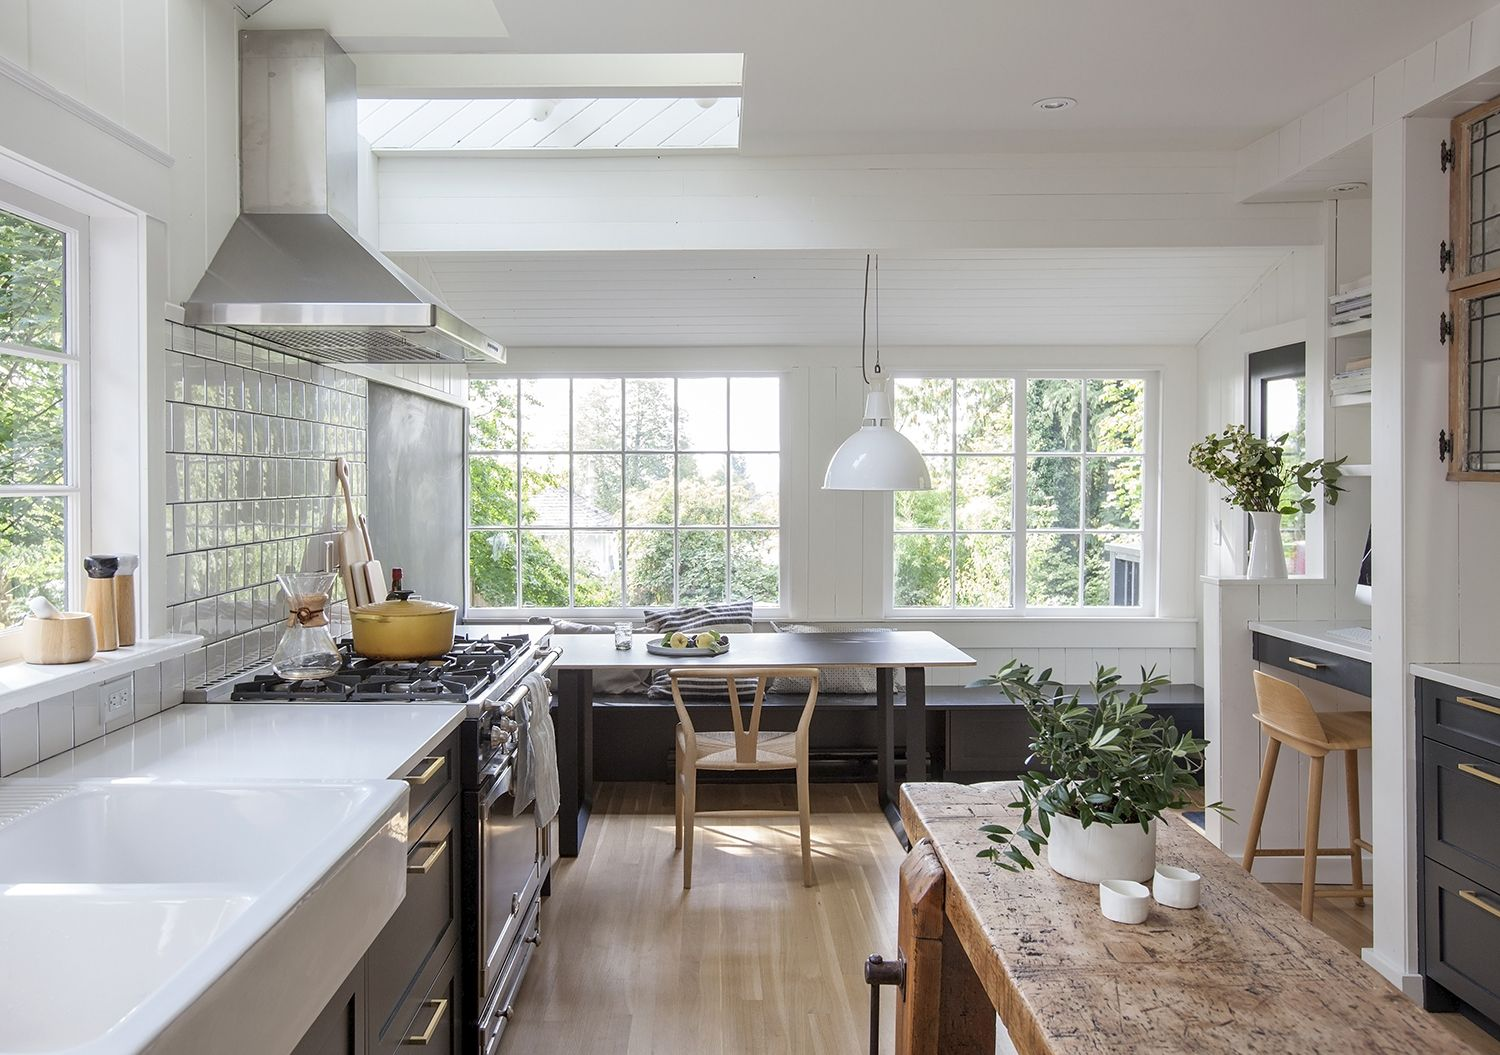 Well I Fell In Love Today This Home Designed By This Gal I Am In Love Up To My Eyebrows The Fi Home Decor Kitchen Modern Kitchen Island Kitchen Renovation